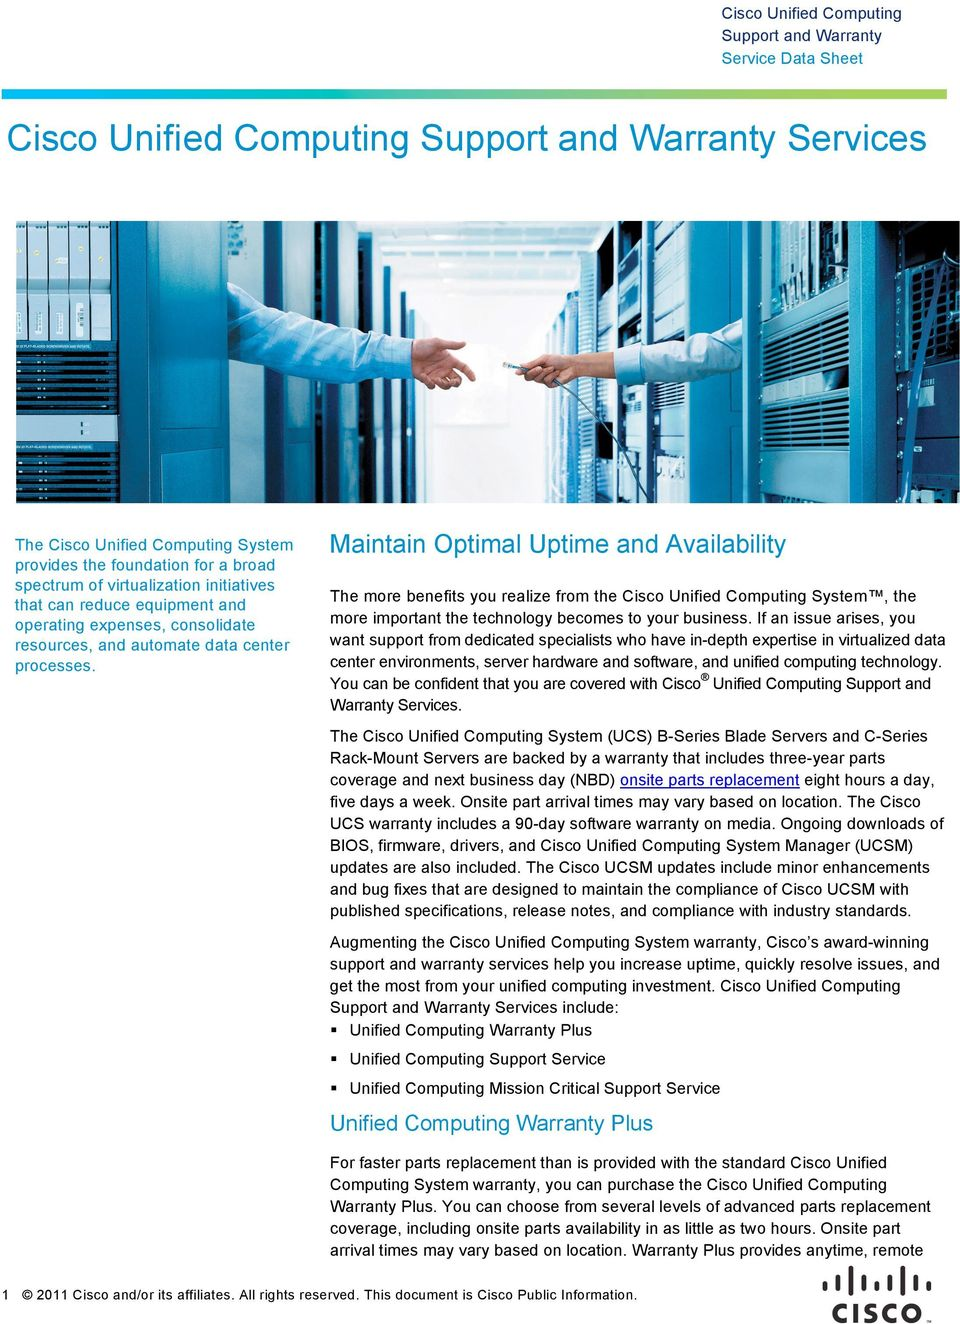 Maintain Optimal Uptime and Availability The more benefits you realize from the Cisco Unified Computing System, the more important the technology becomes to your business.